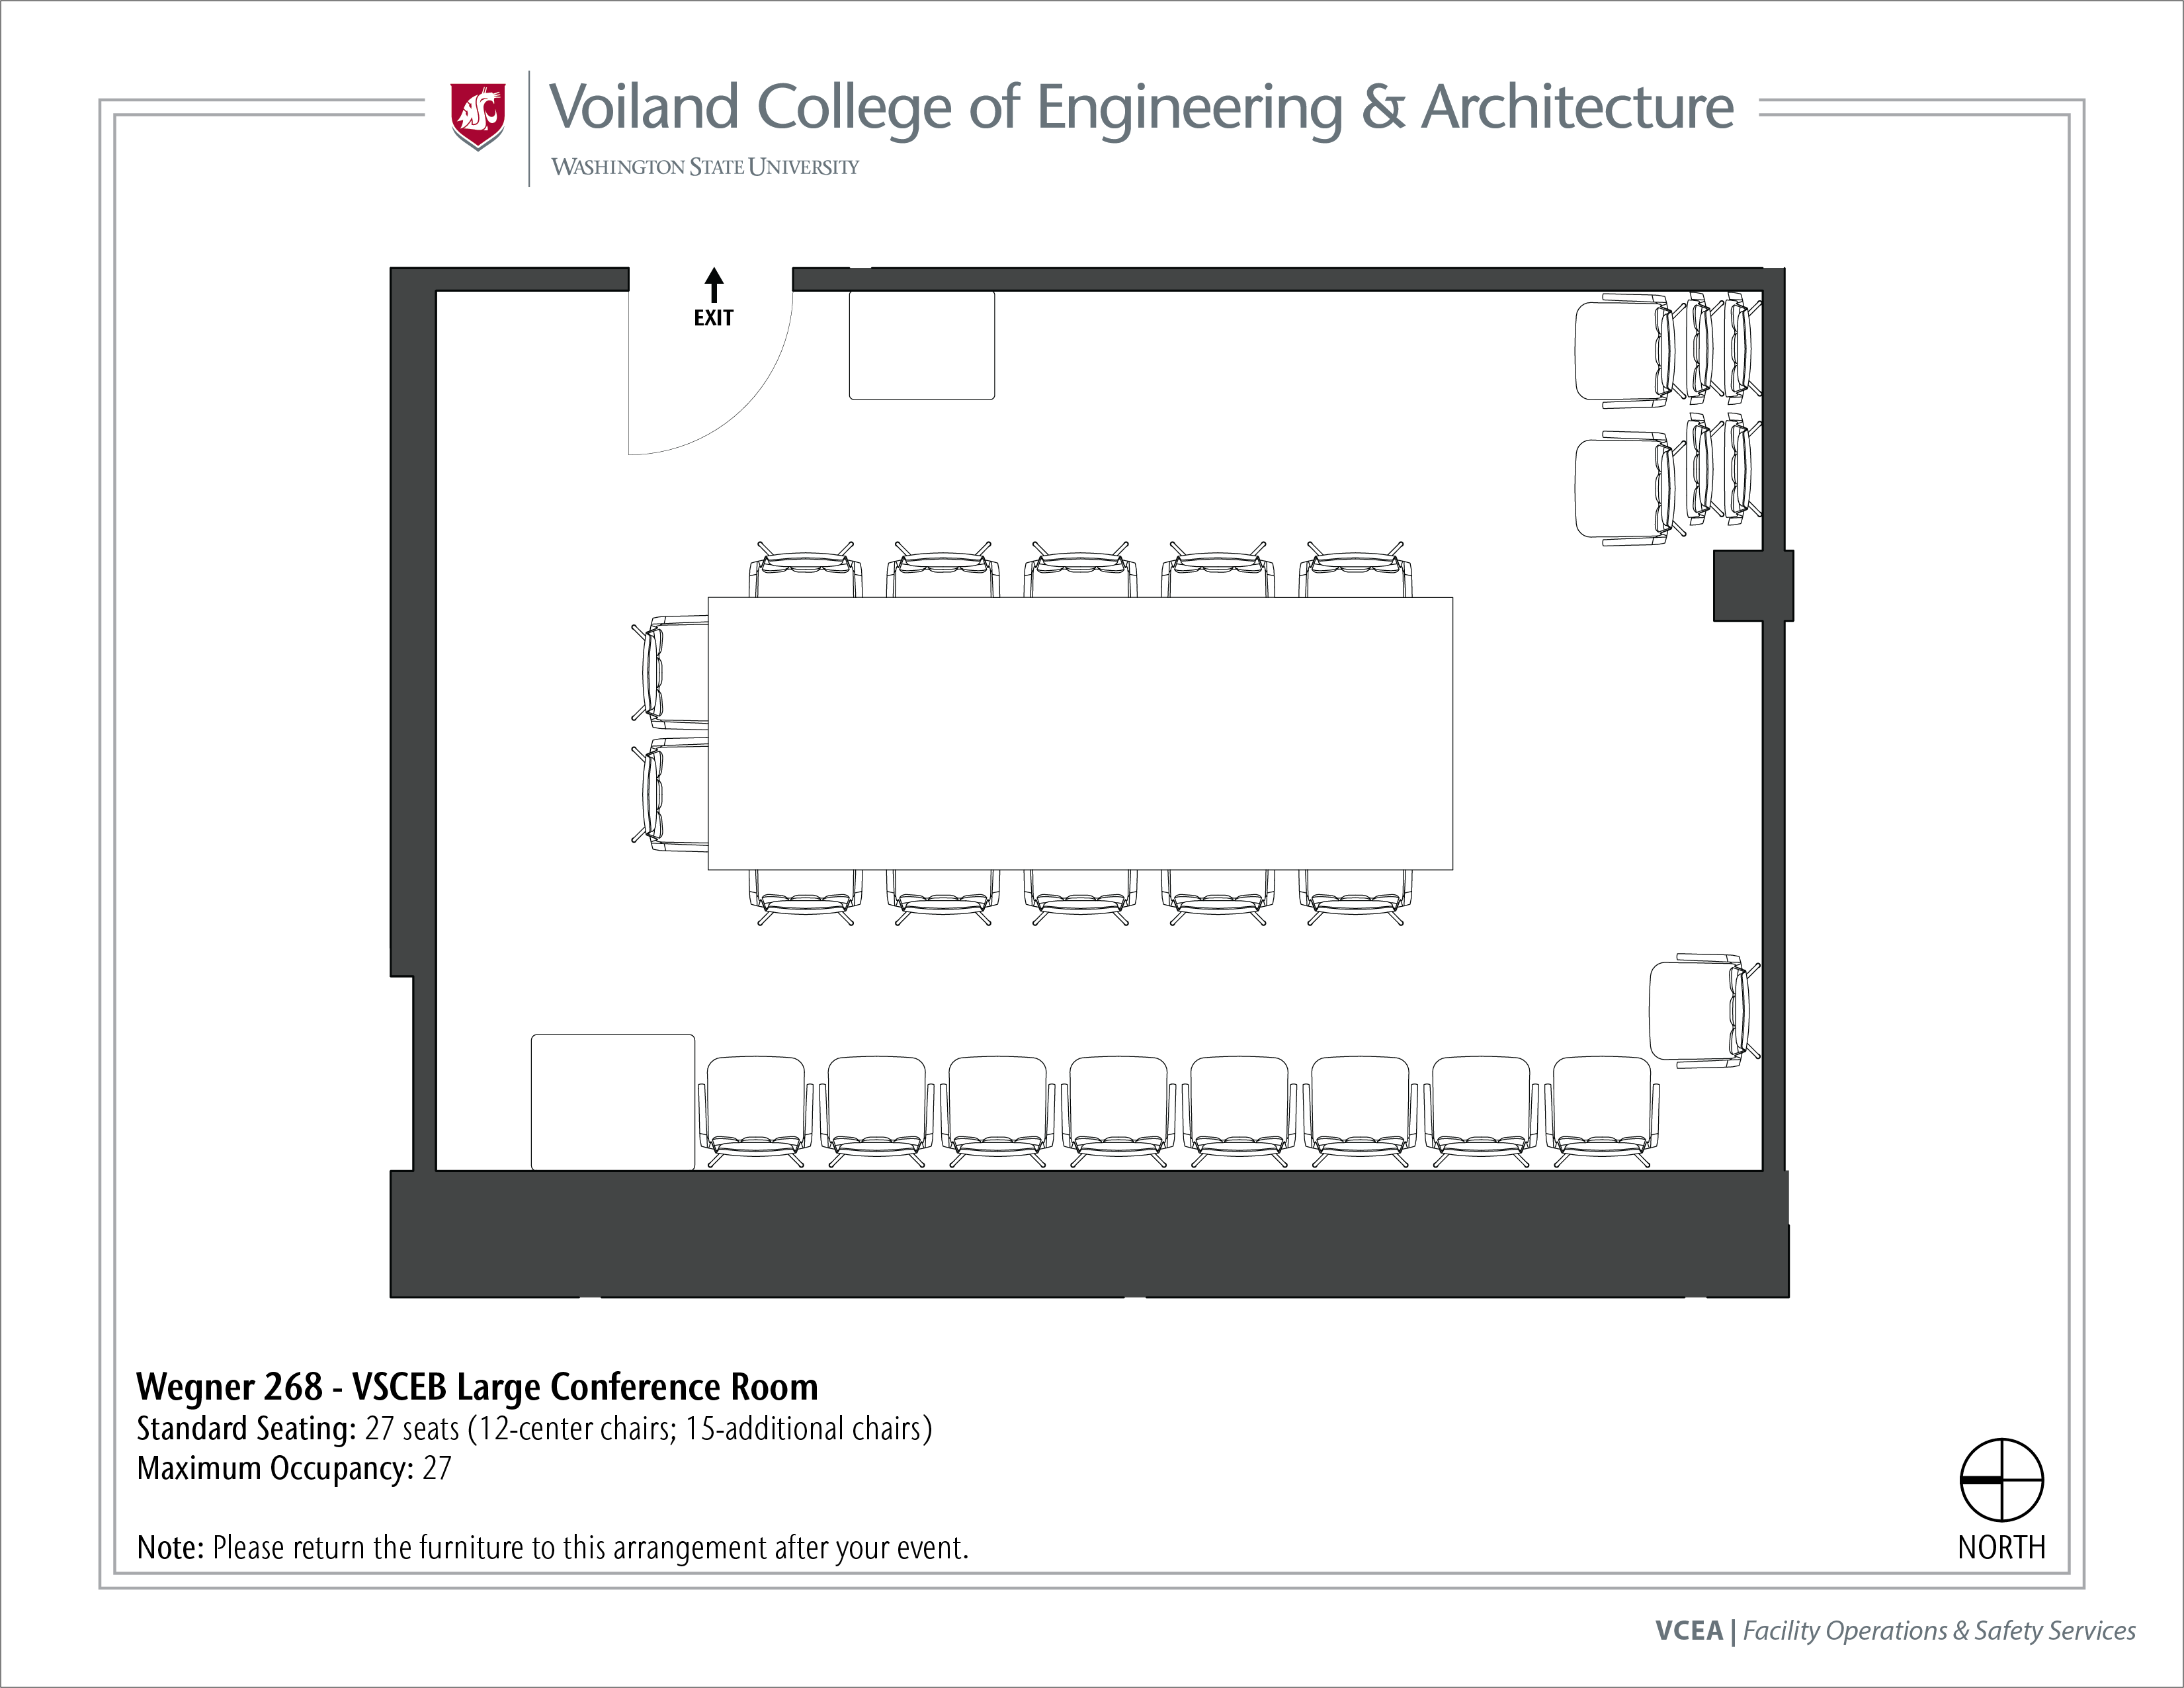 Layout of Wegner 268, VSCEB Large Conference Room, at WSU Pullman